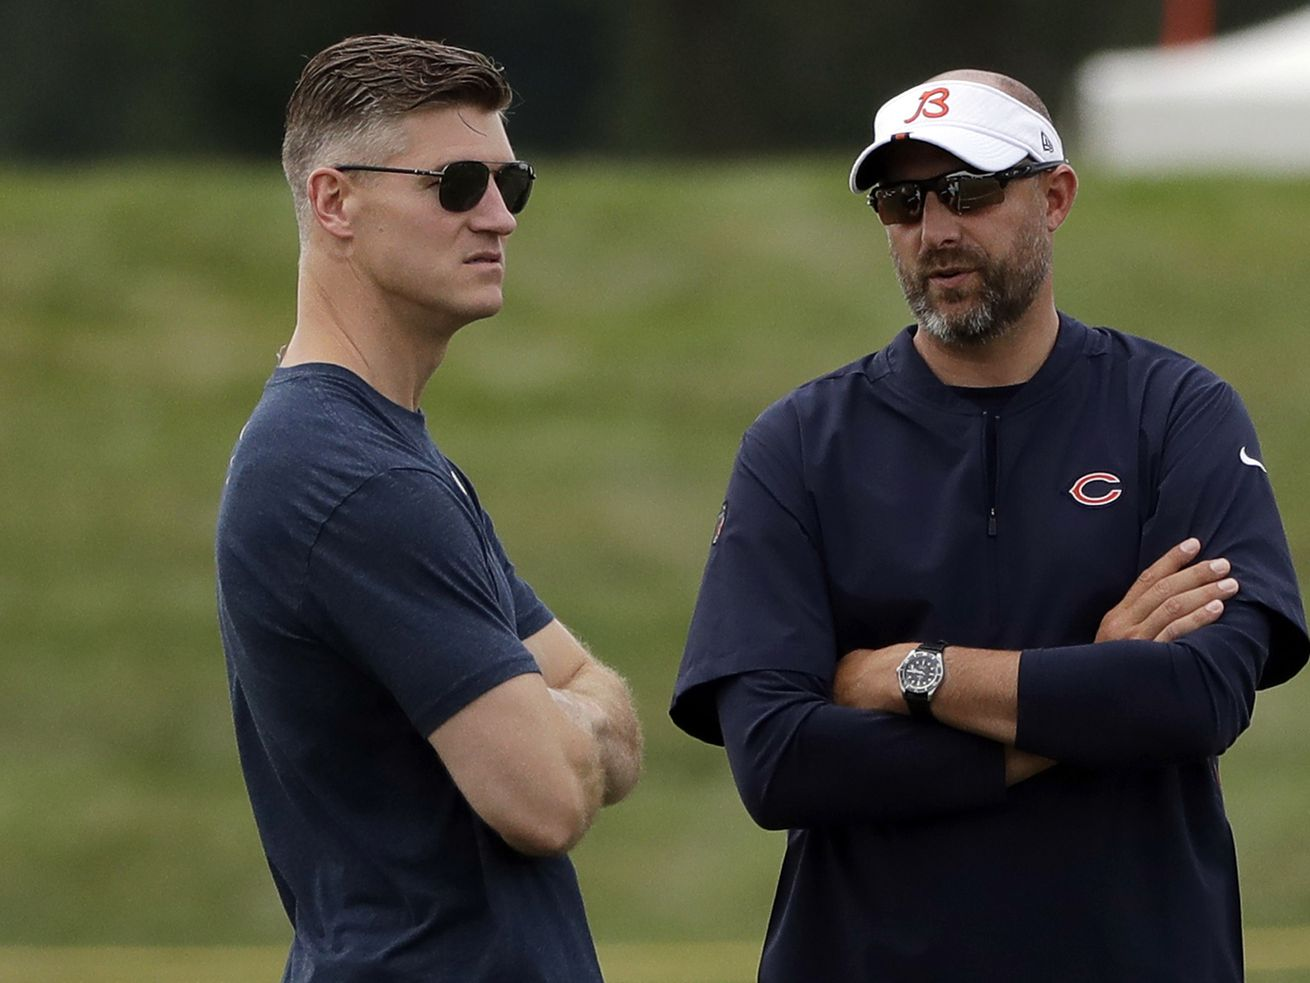 Bears' braintrust on the brink: What's at stake for Ryan Pace, Matt Nagy in 2020?